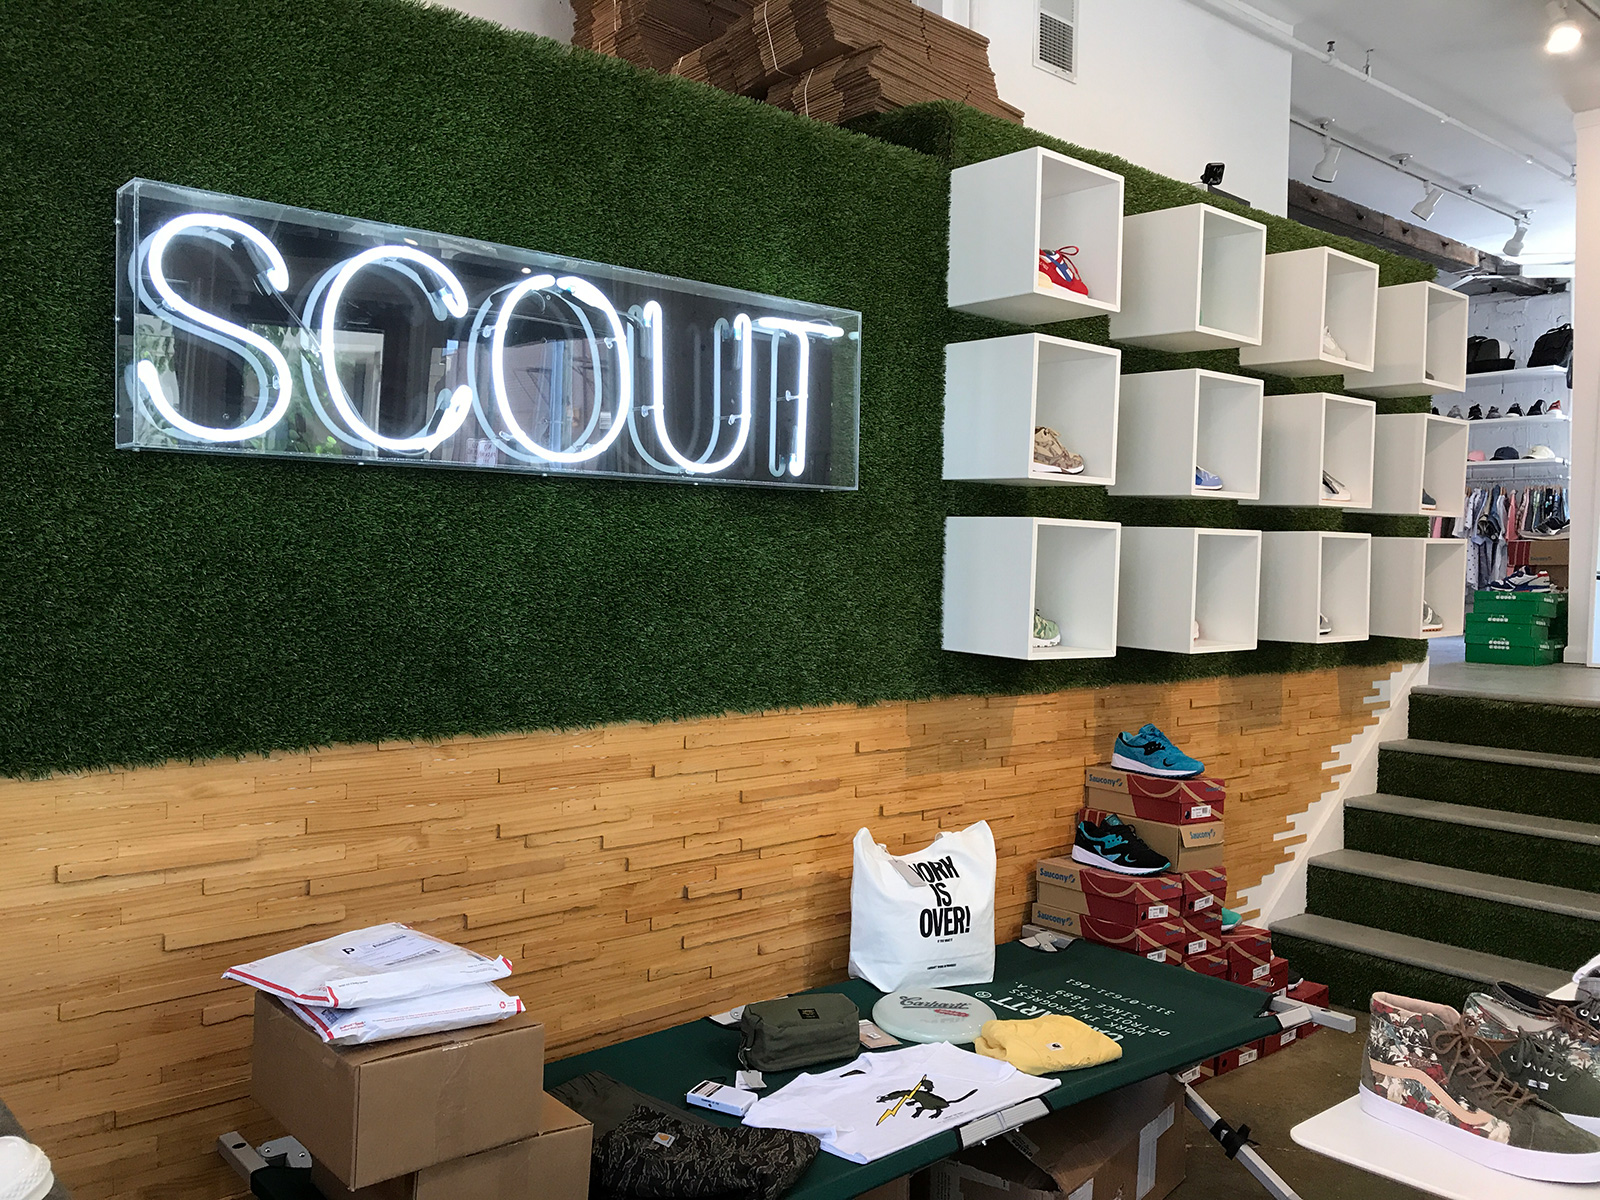 Scout Boutique in Chattanooga, TN by Jets Like Taxis